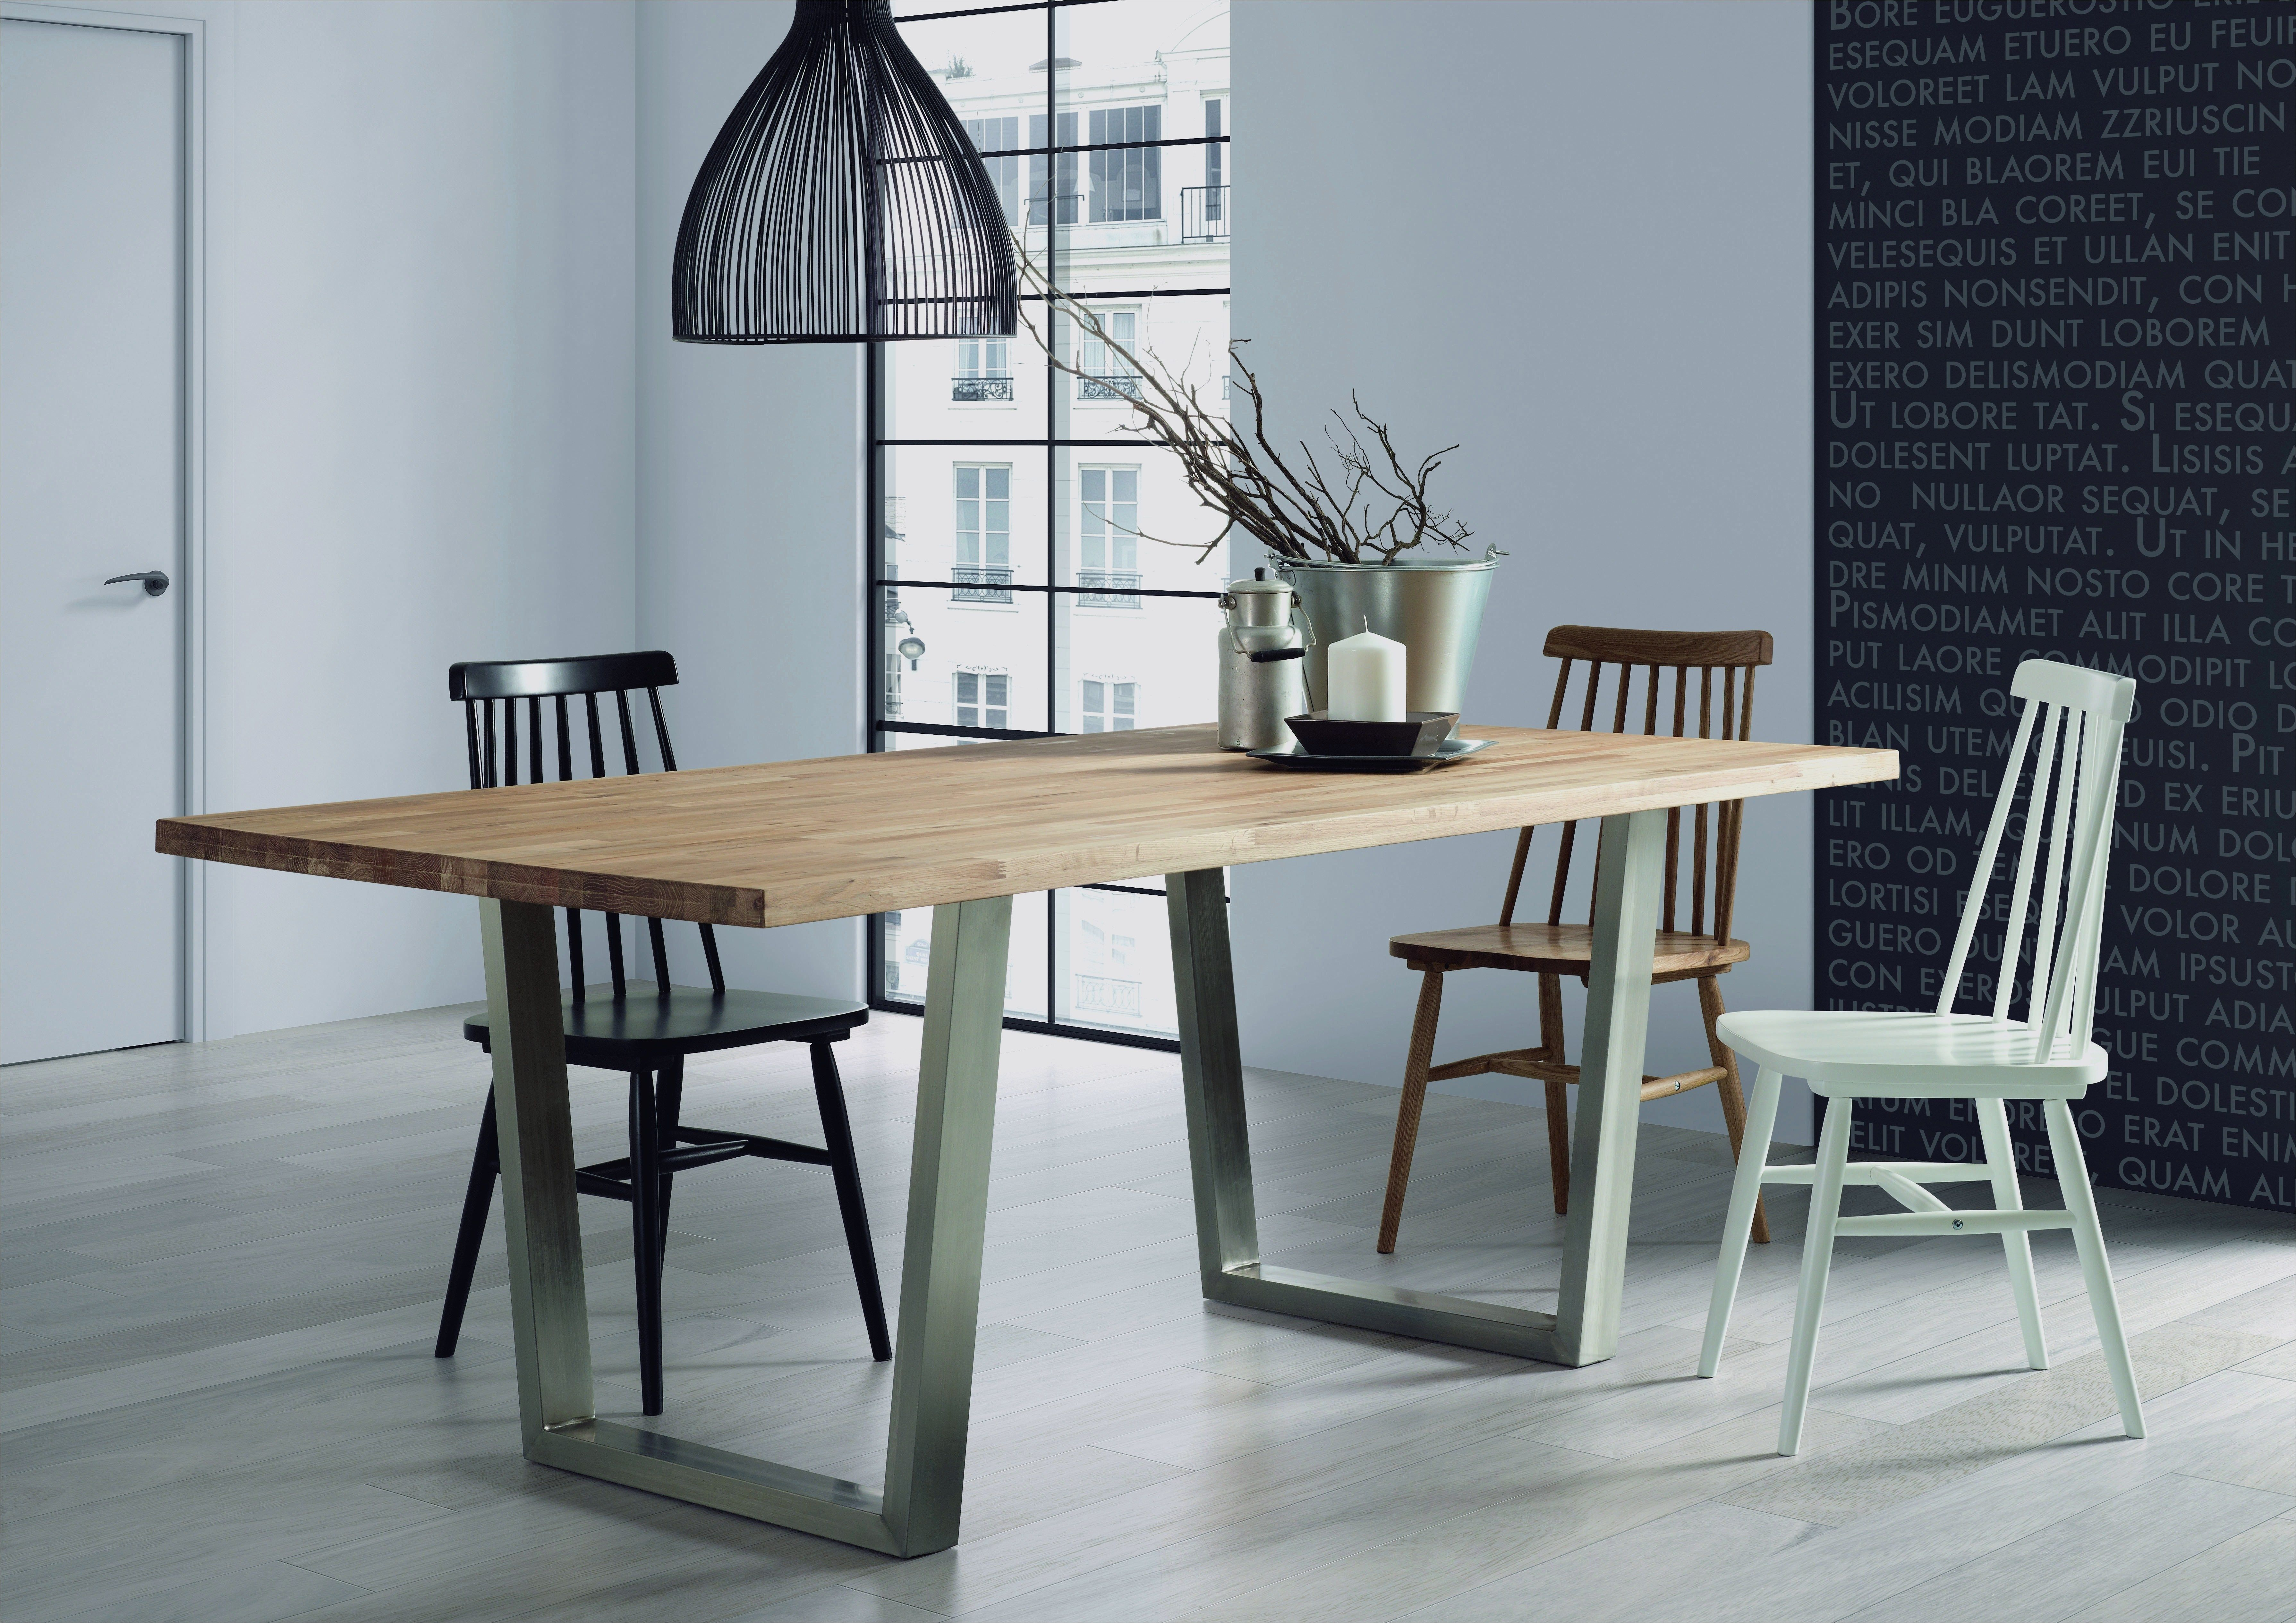 New Meubles Nikelly Idees De Maison Table Salle A Manger Chaise